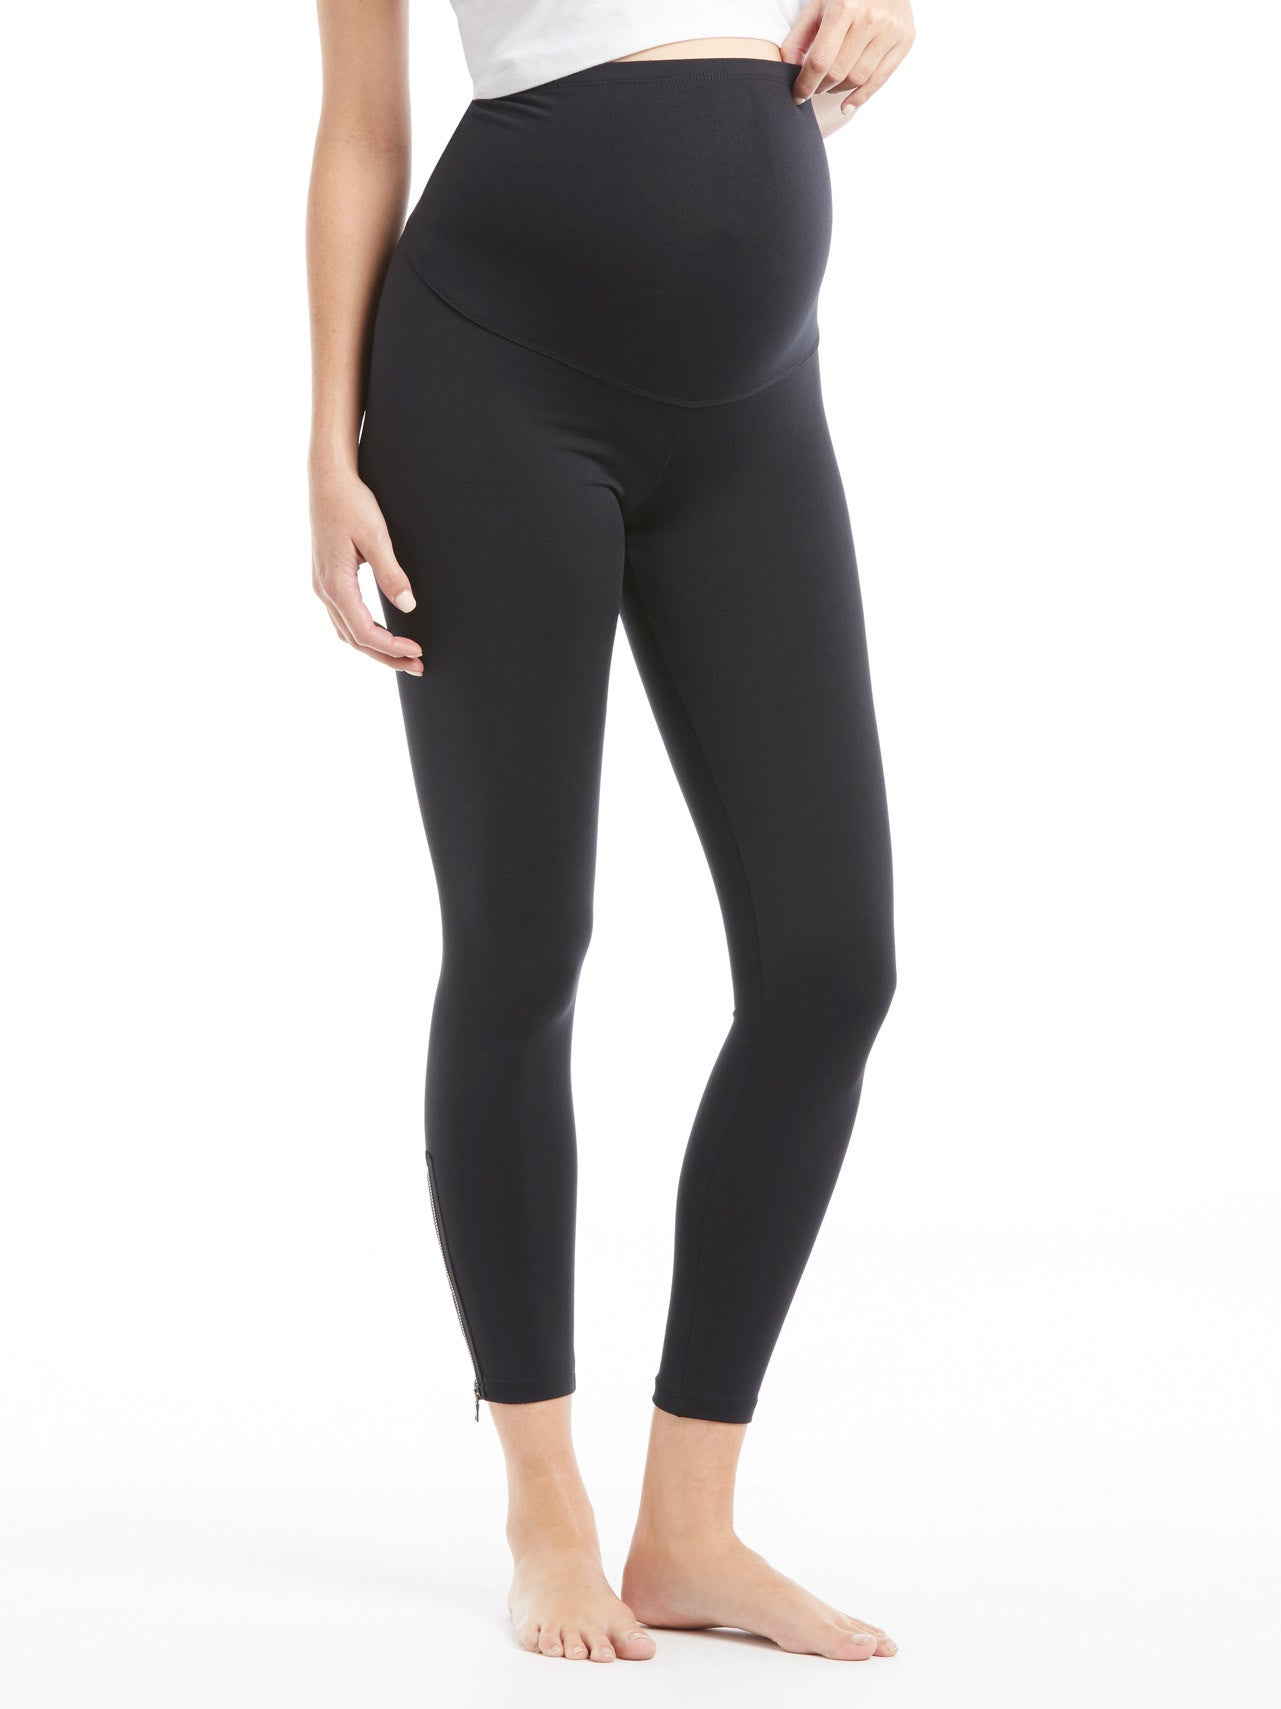 TILDEN | David Lerner Maternity Zipper Legging